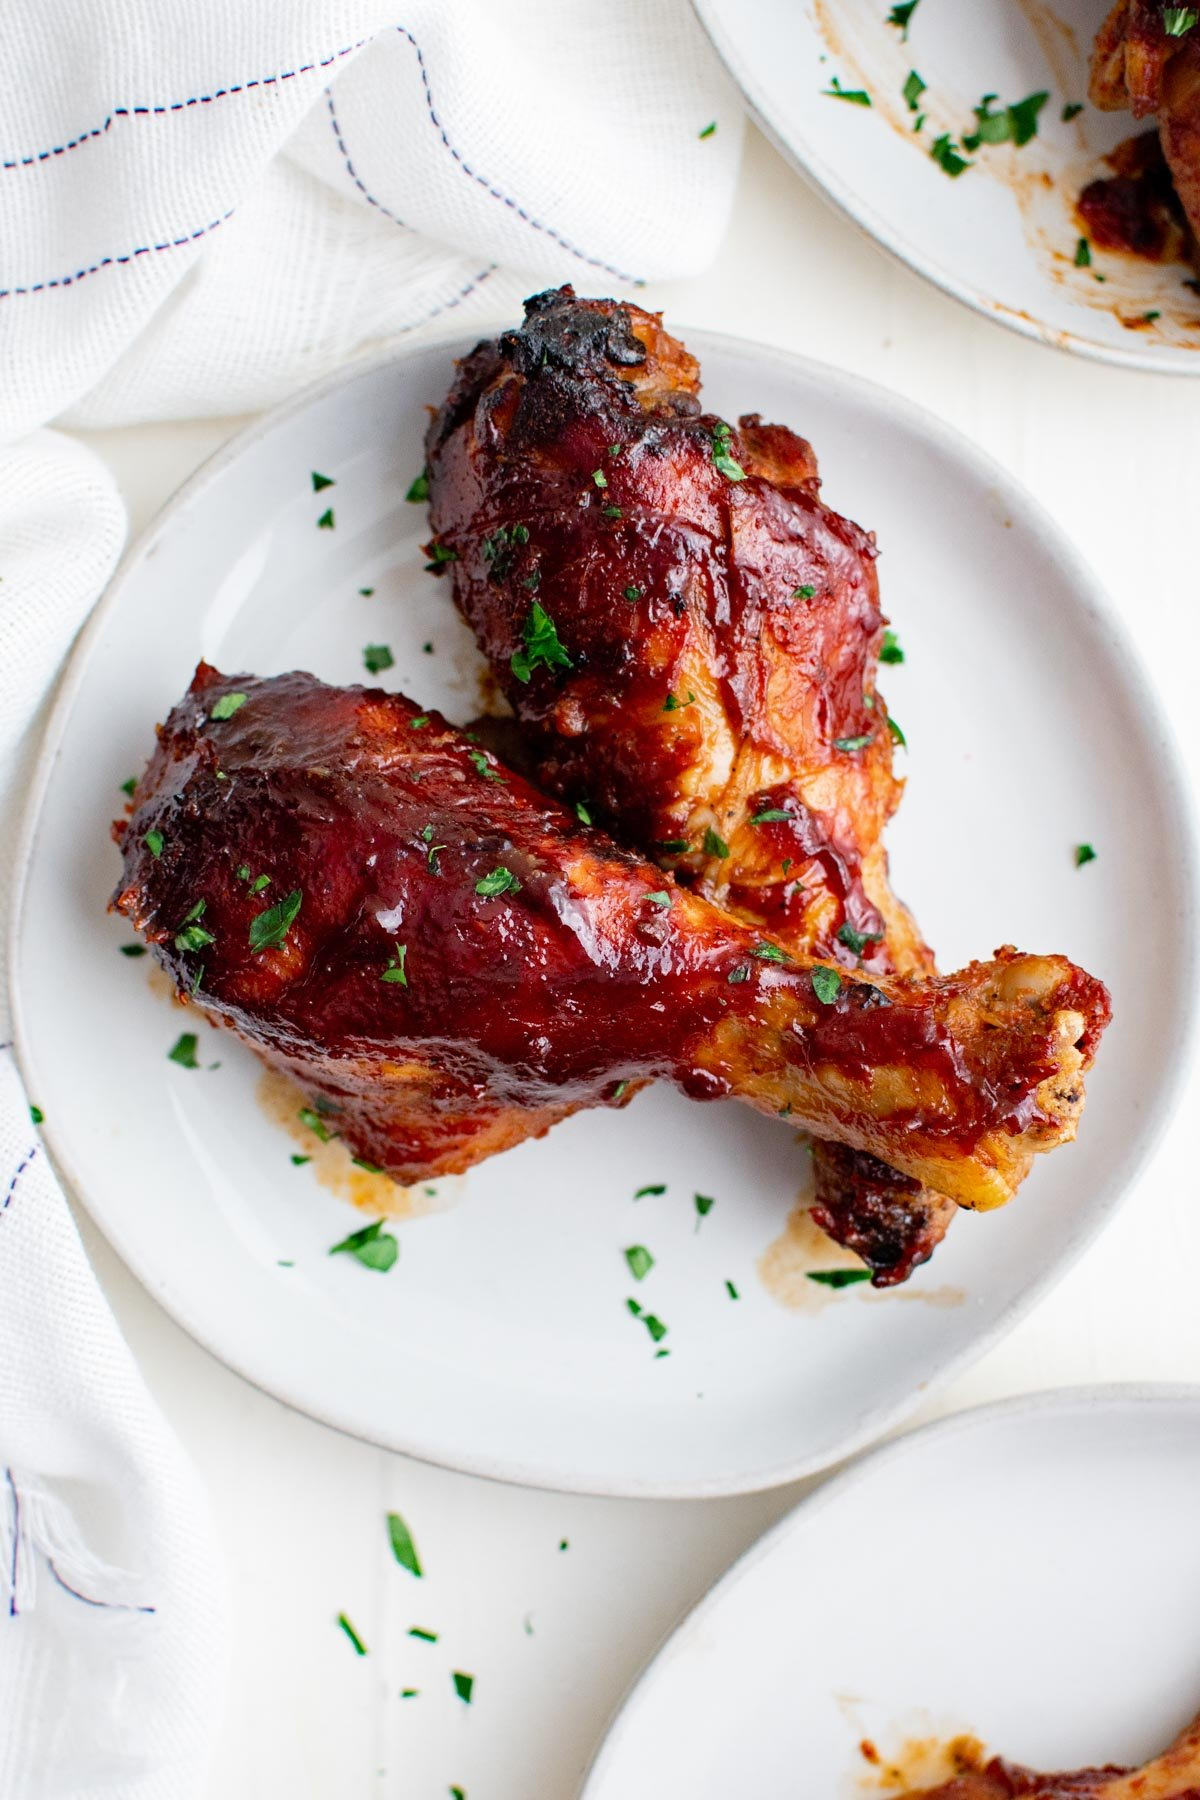 chicken legs with bbq sauce on a white plate